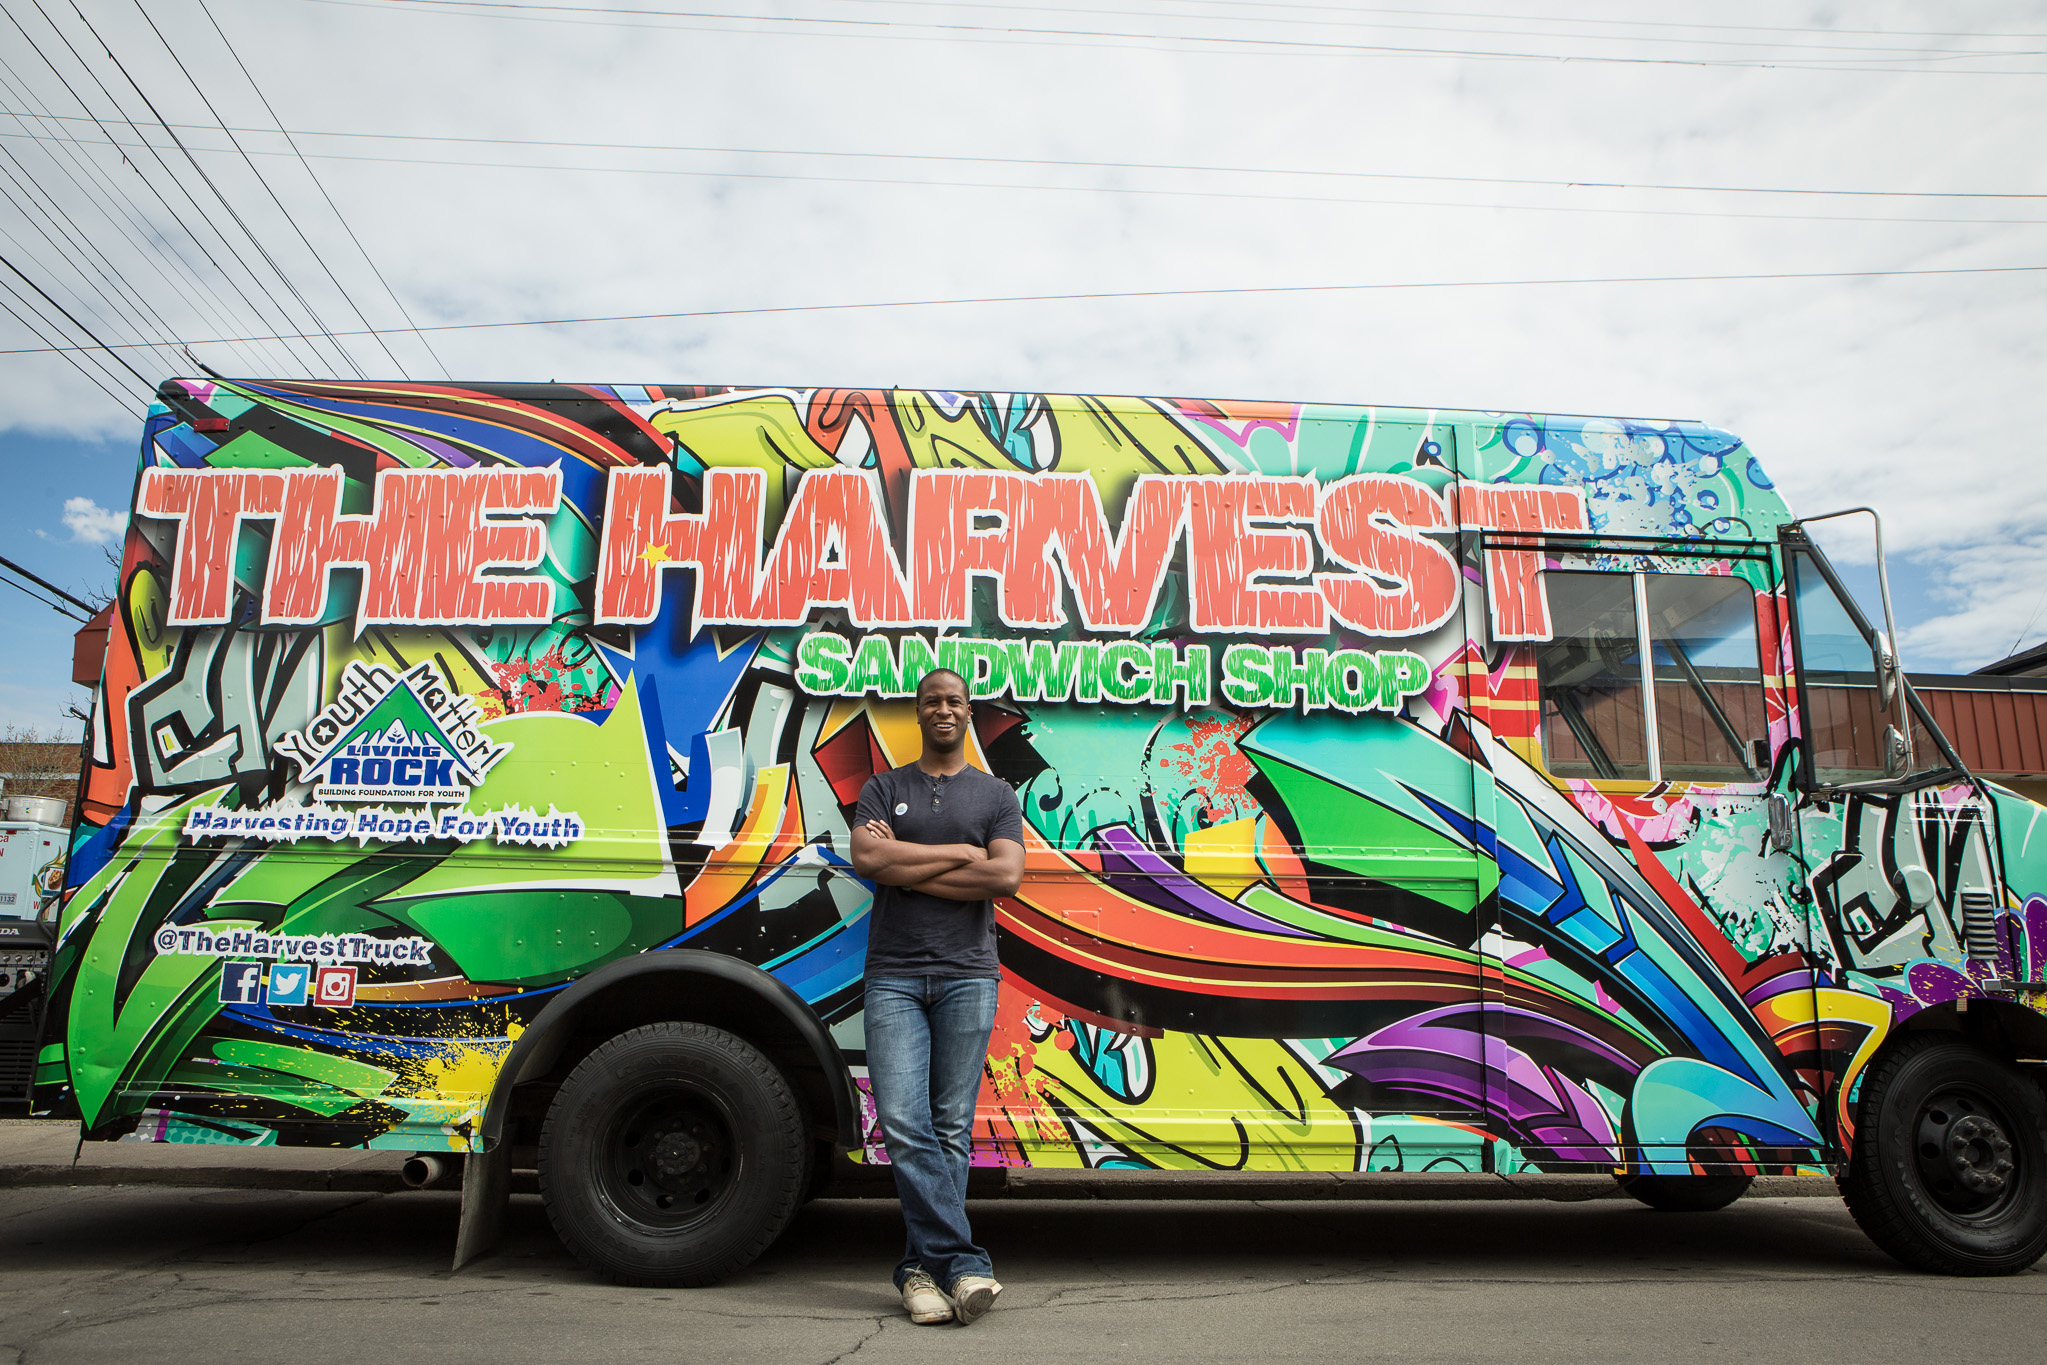 the harvest food truck